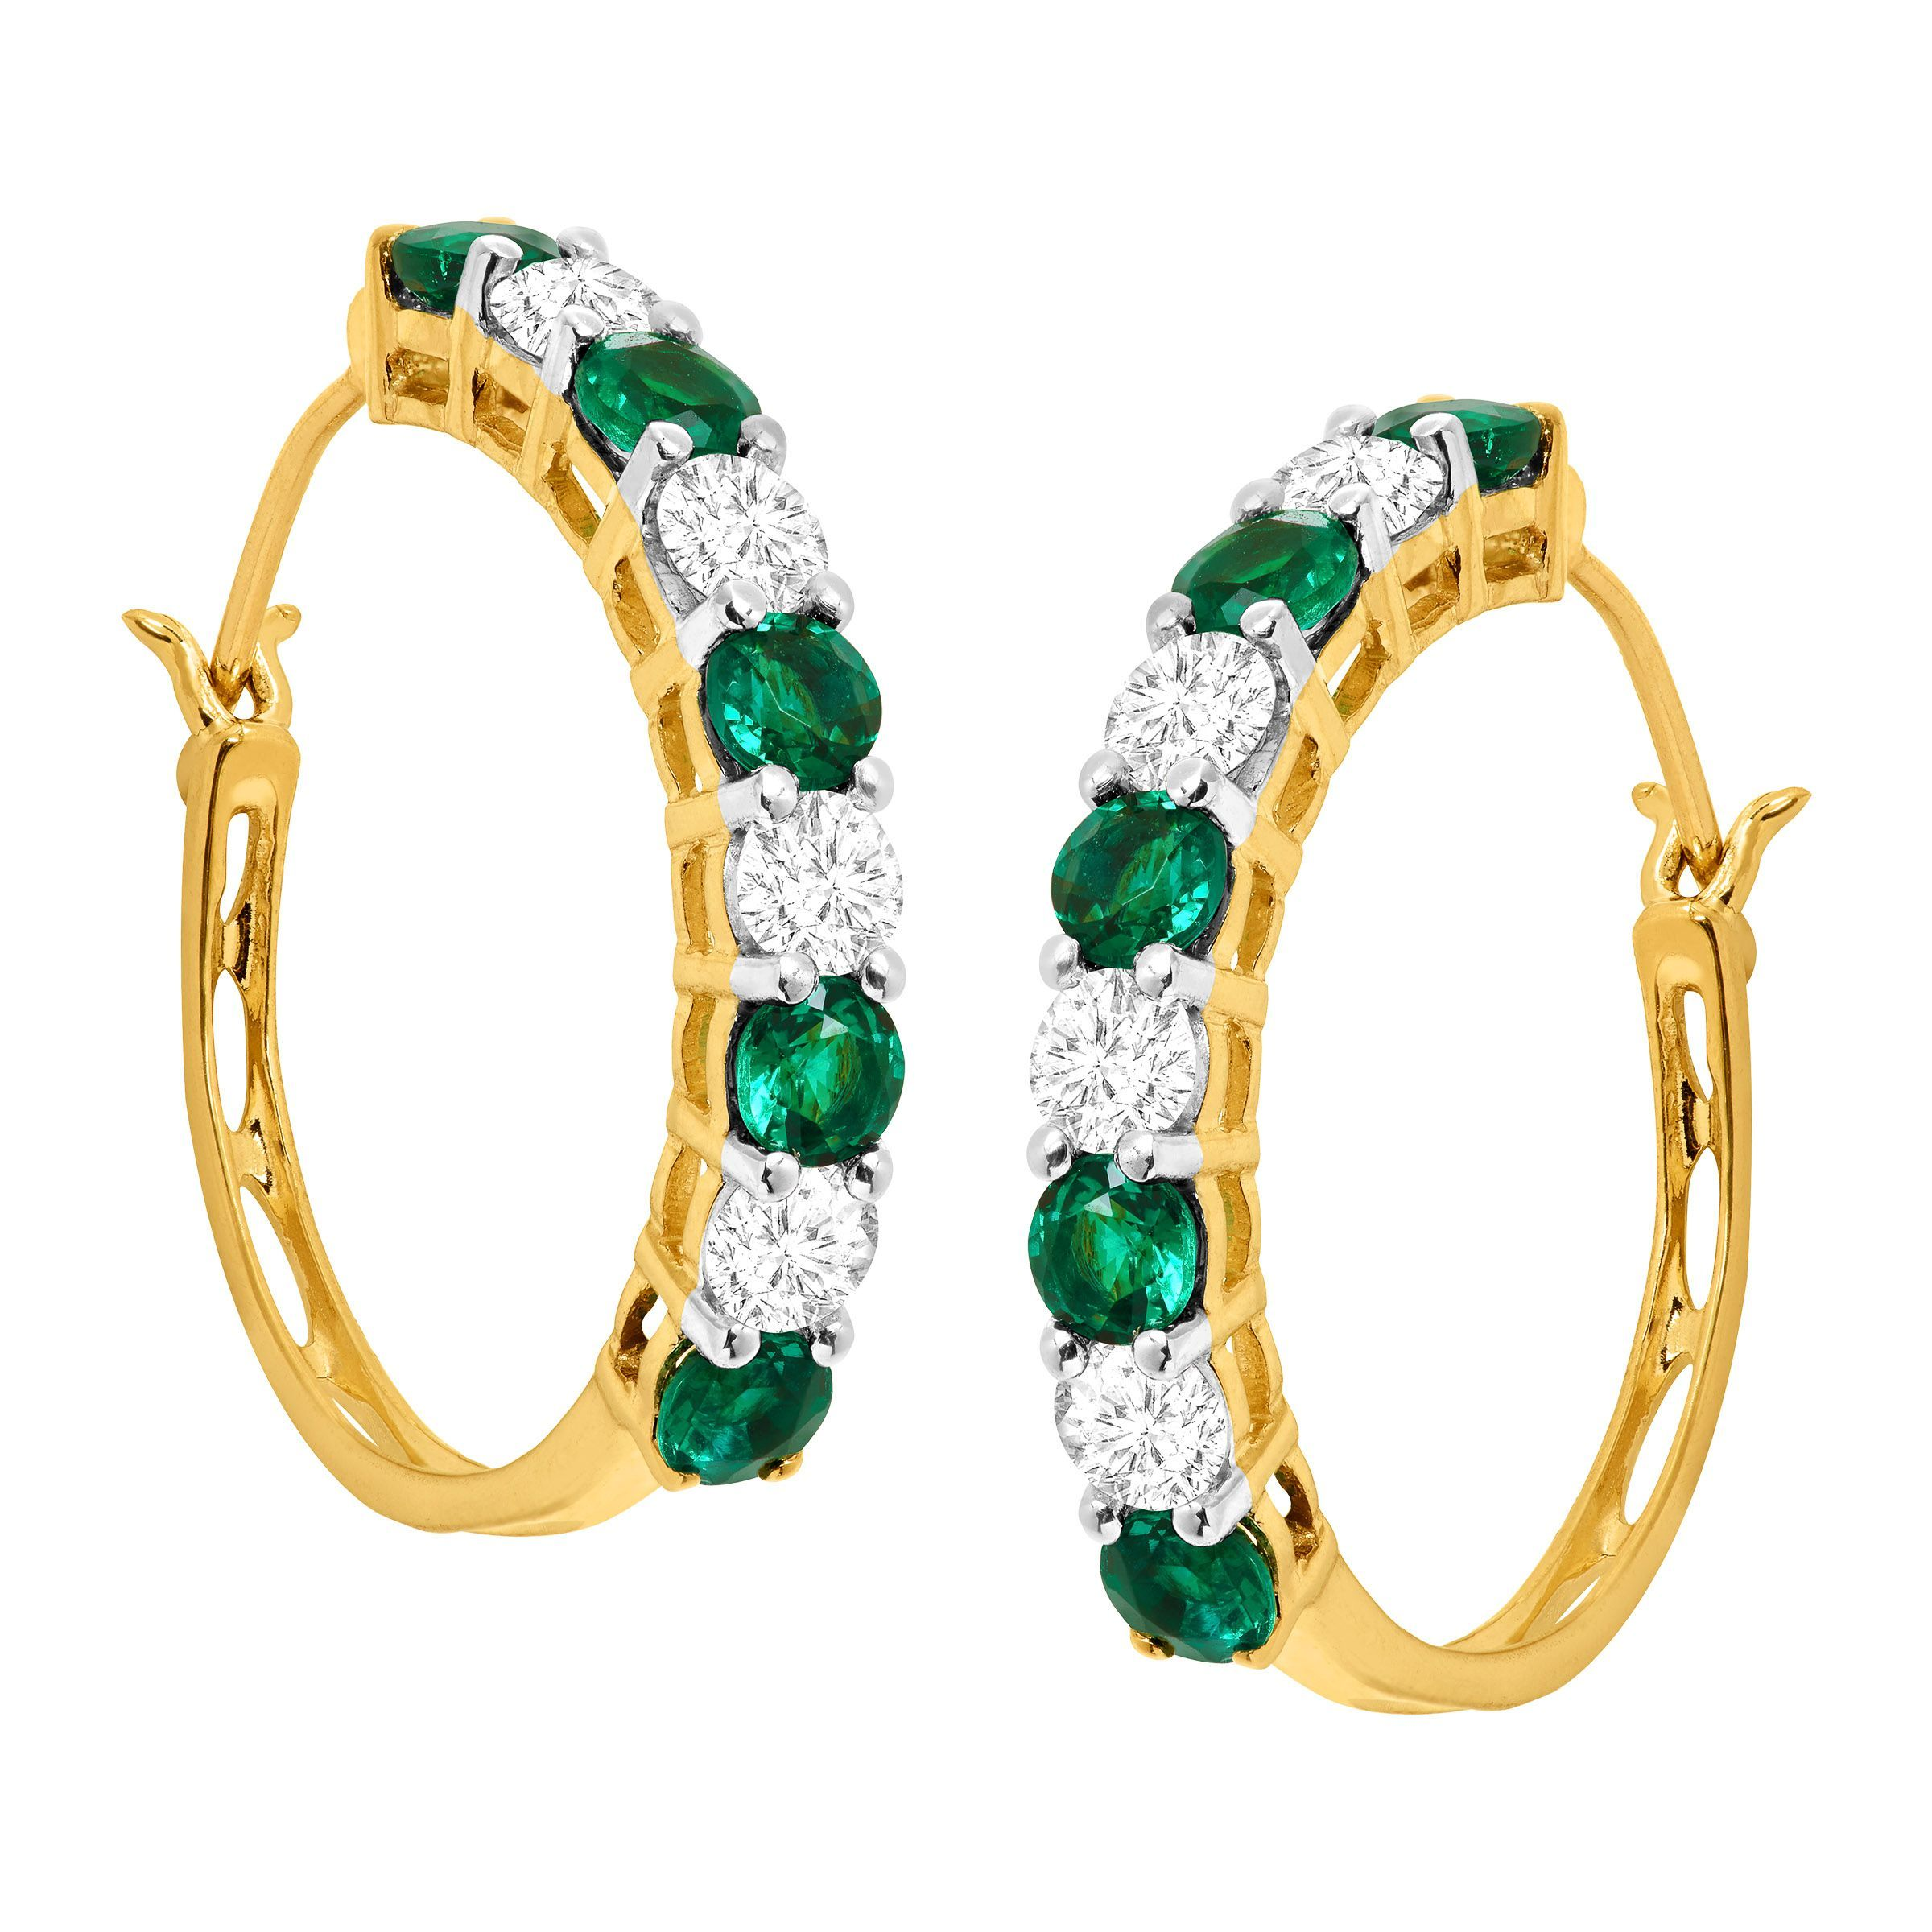 watch gold diamonds emeralds earrings handmade youtube and emerald jewellery red